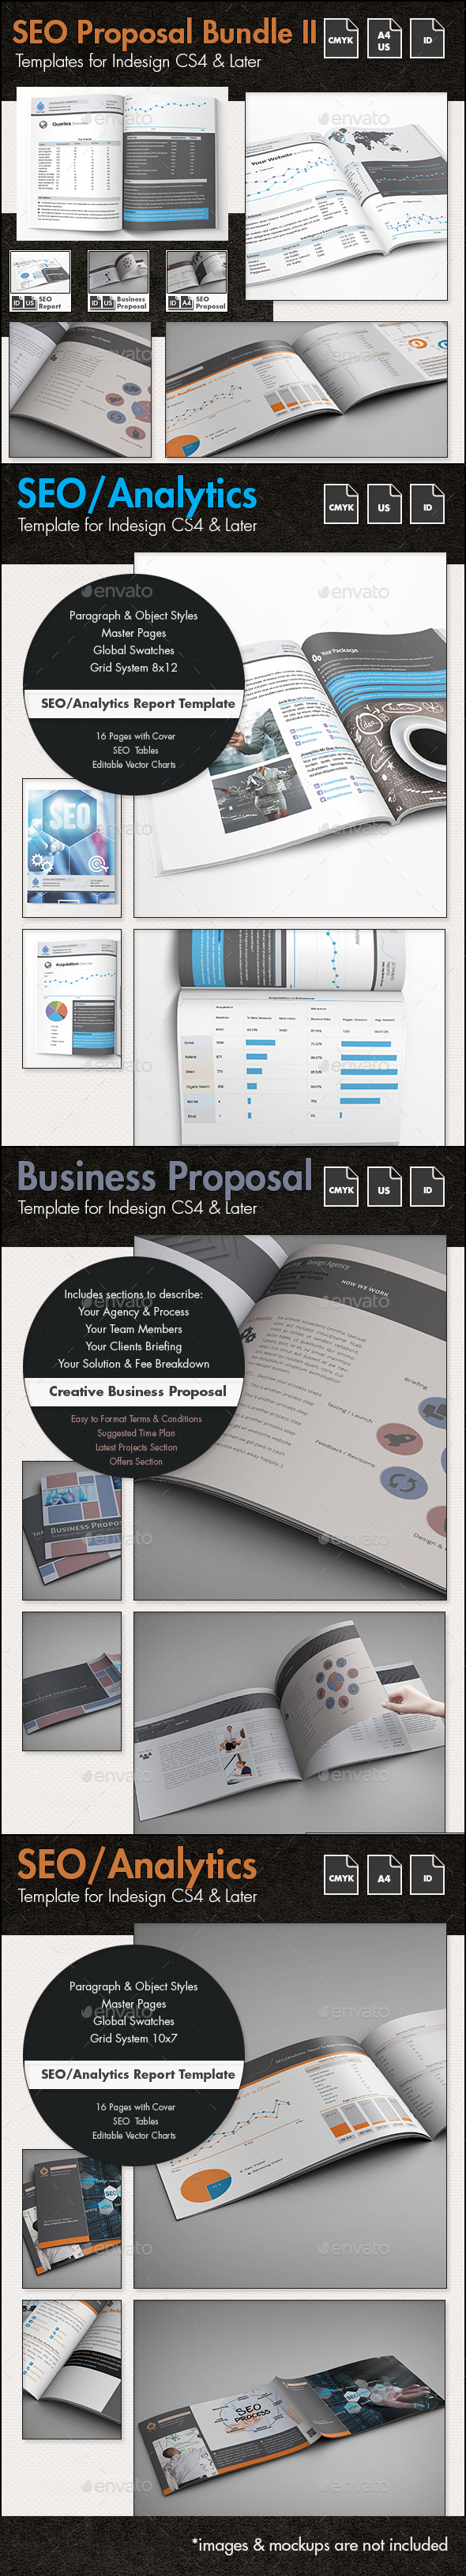 SEO - Business Proposal Templates Bundle II - Proposals & Invoices Stationery